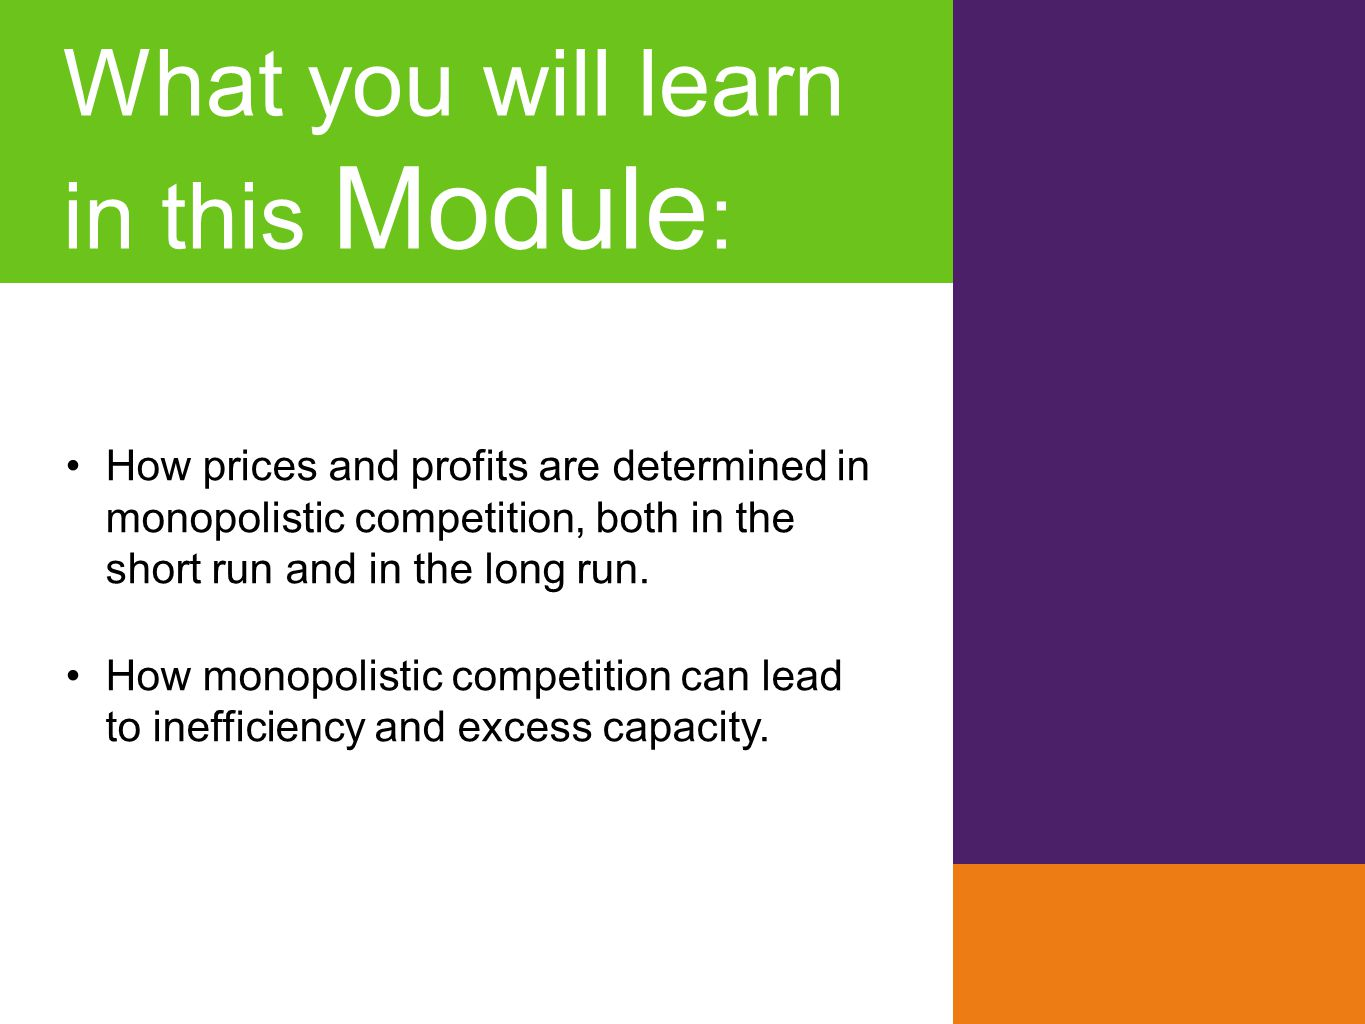 What you will learn in this Module : How prices and profits are determined in monopolistic competition, both in the short run and in the long run. How